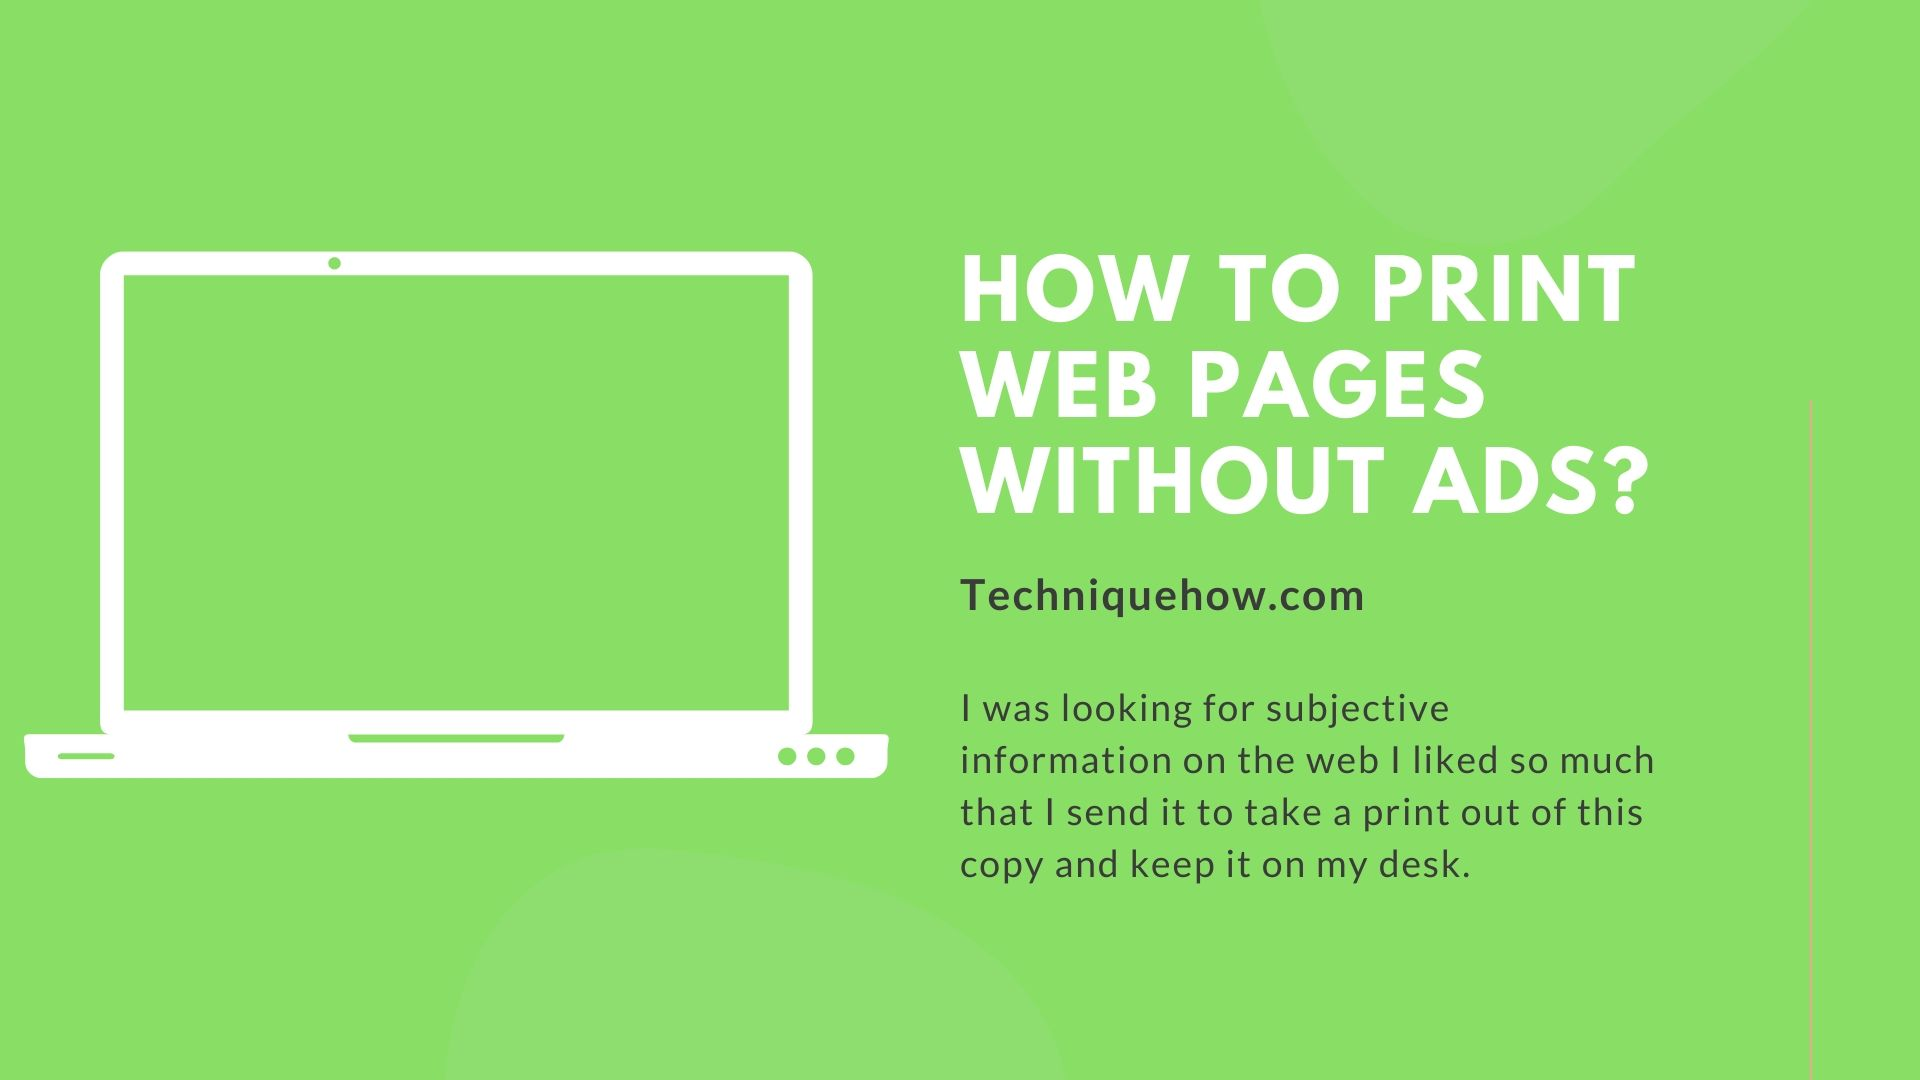 print web pages without ads